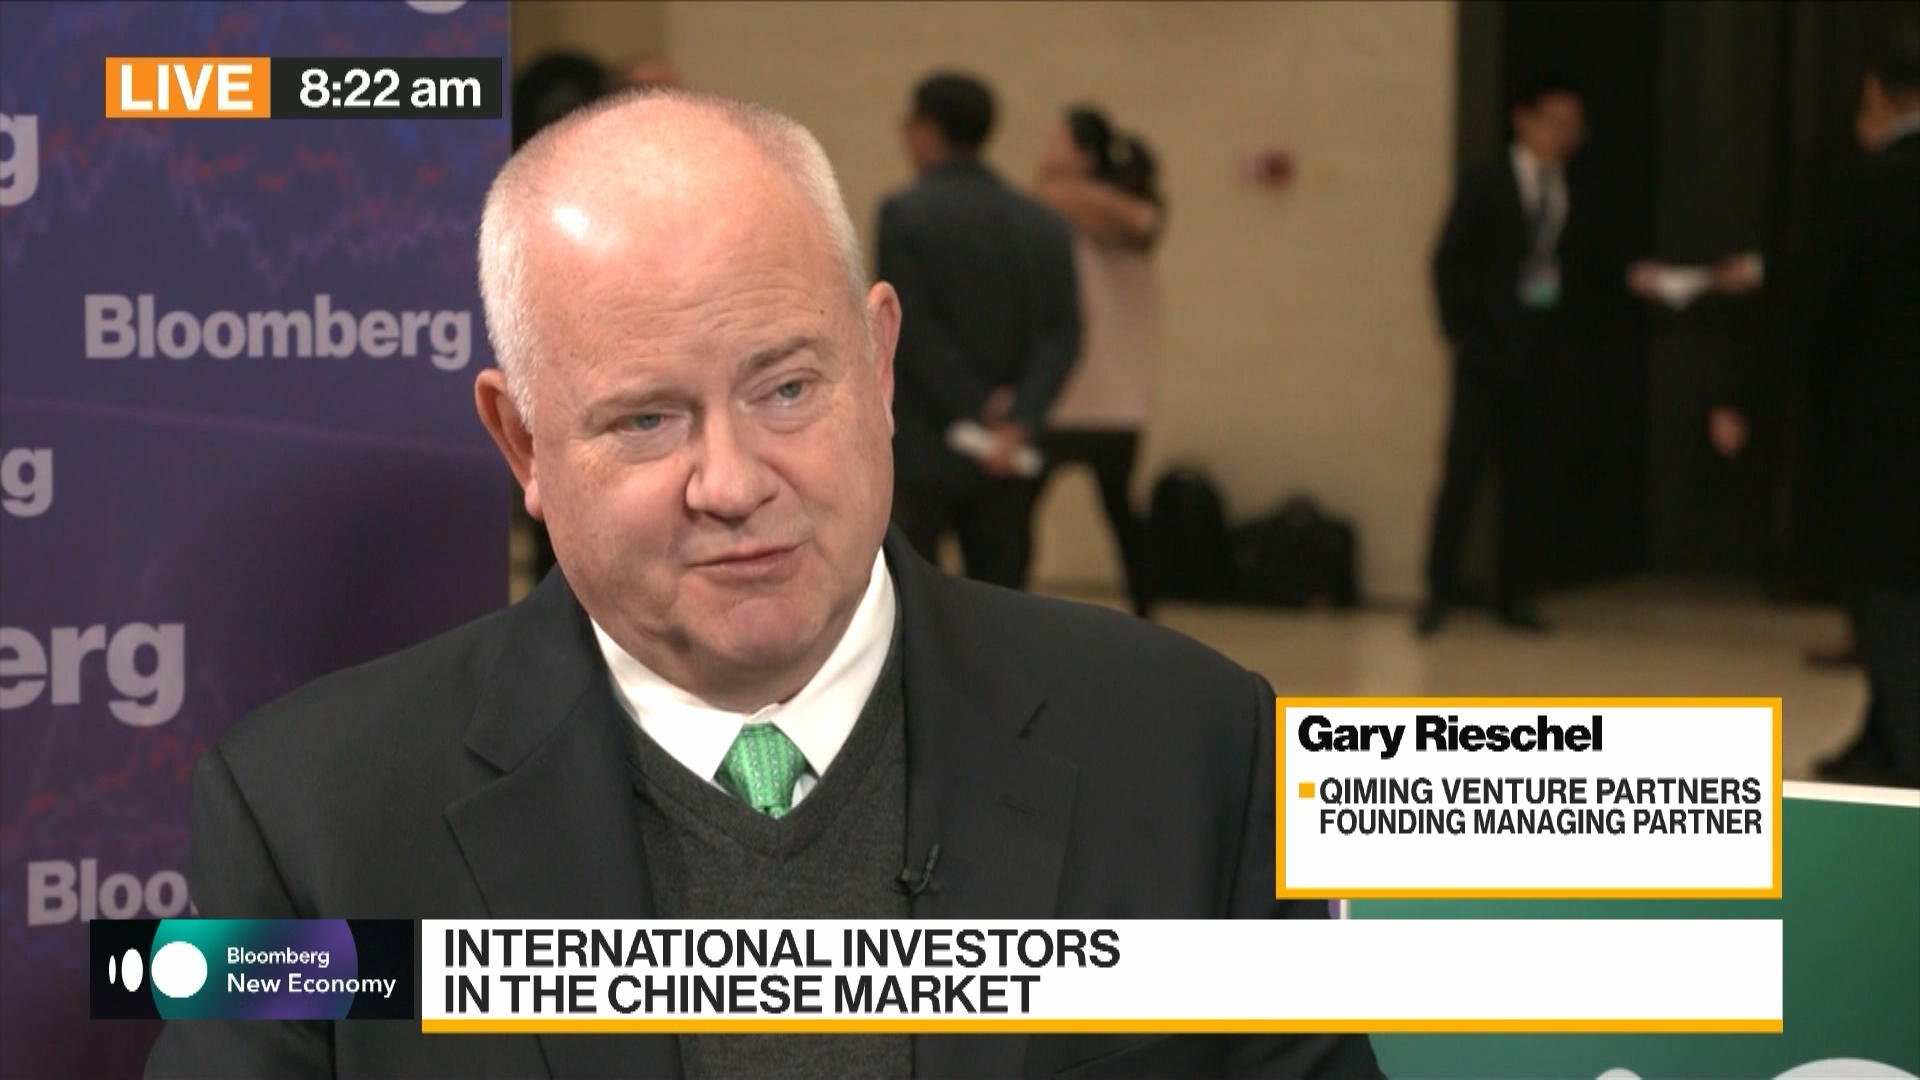 China Tech, AI, Cryptocurrencies Discussed by Gary Rieschel of Qiming Venture Partners